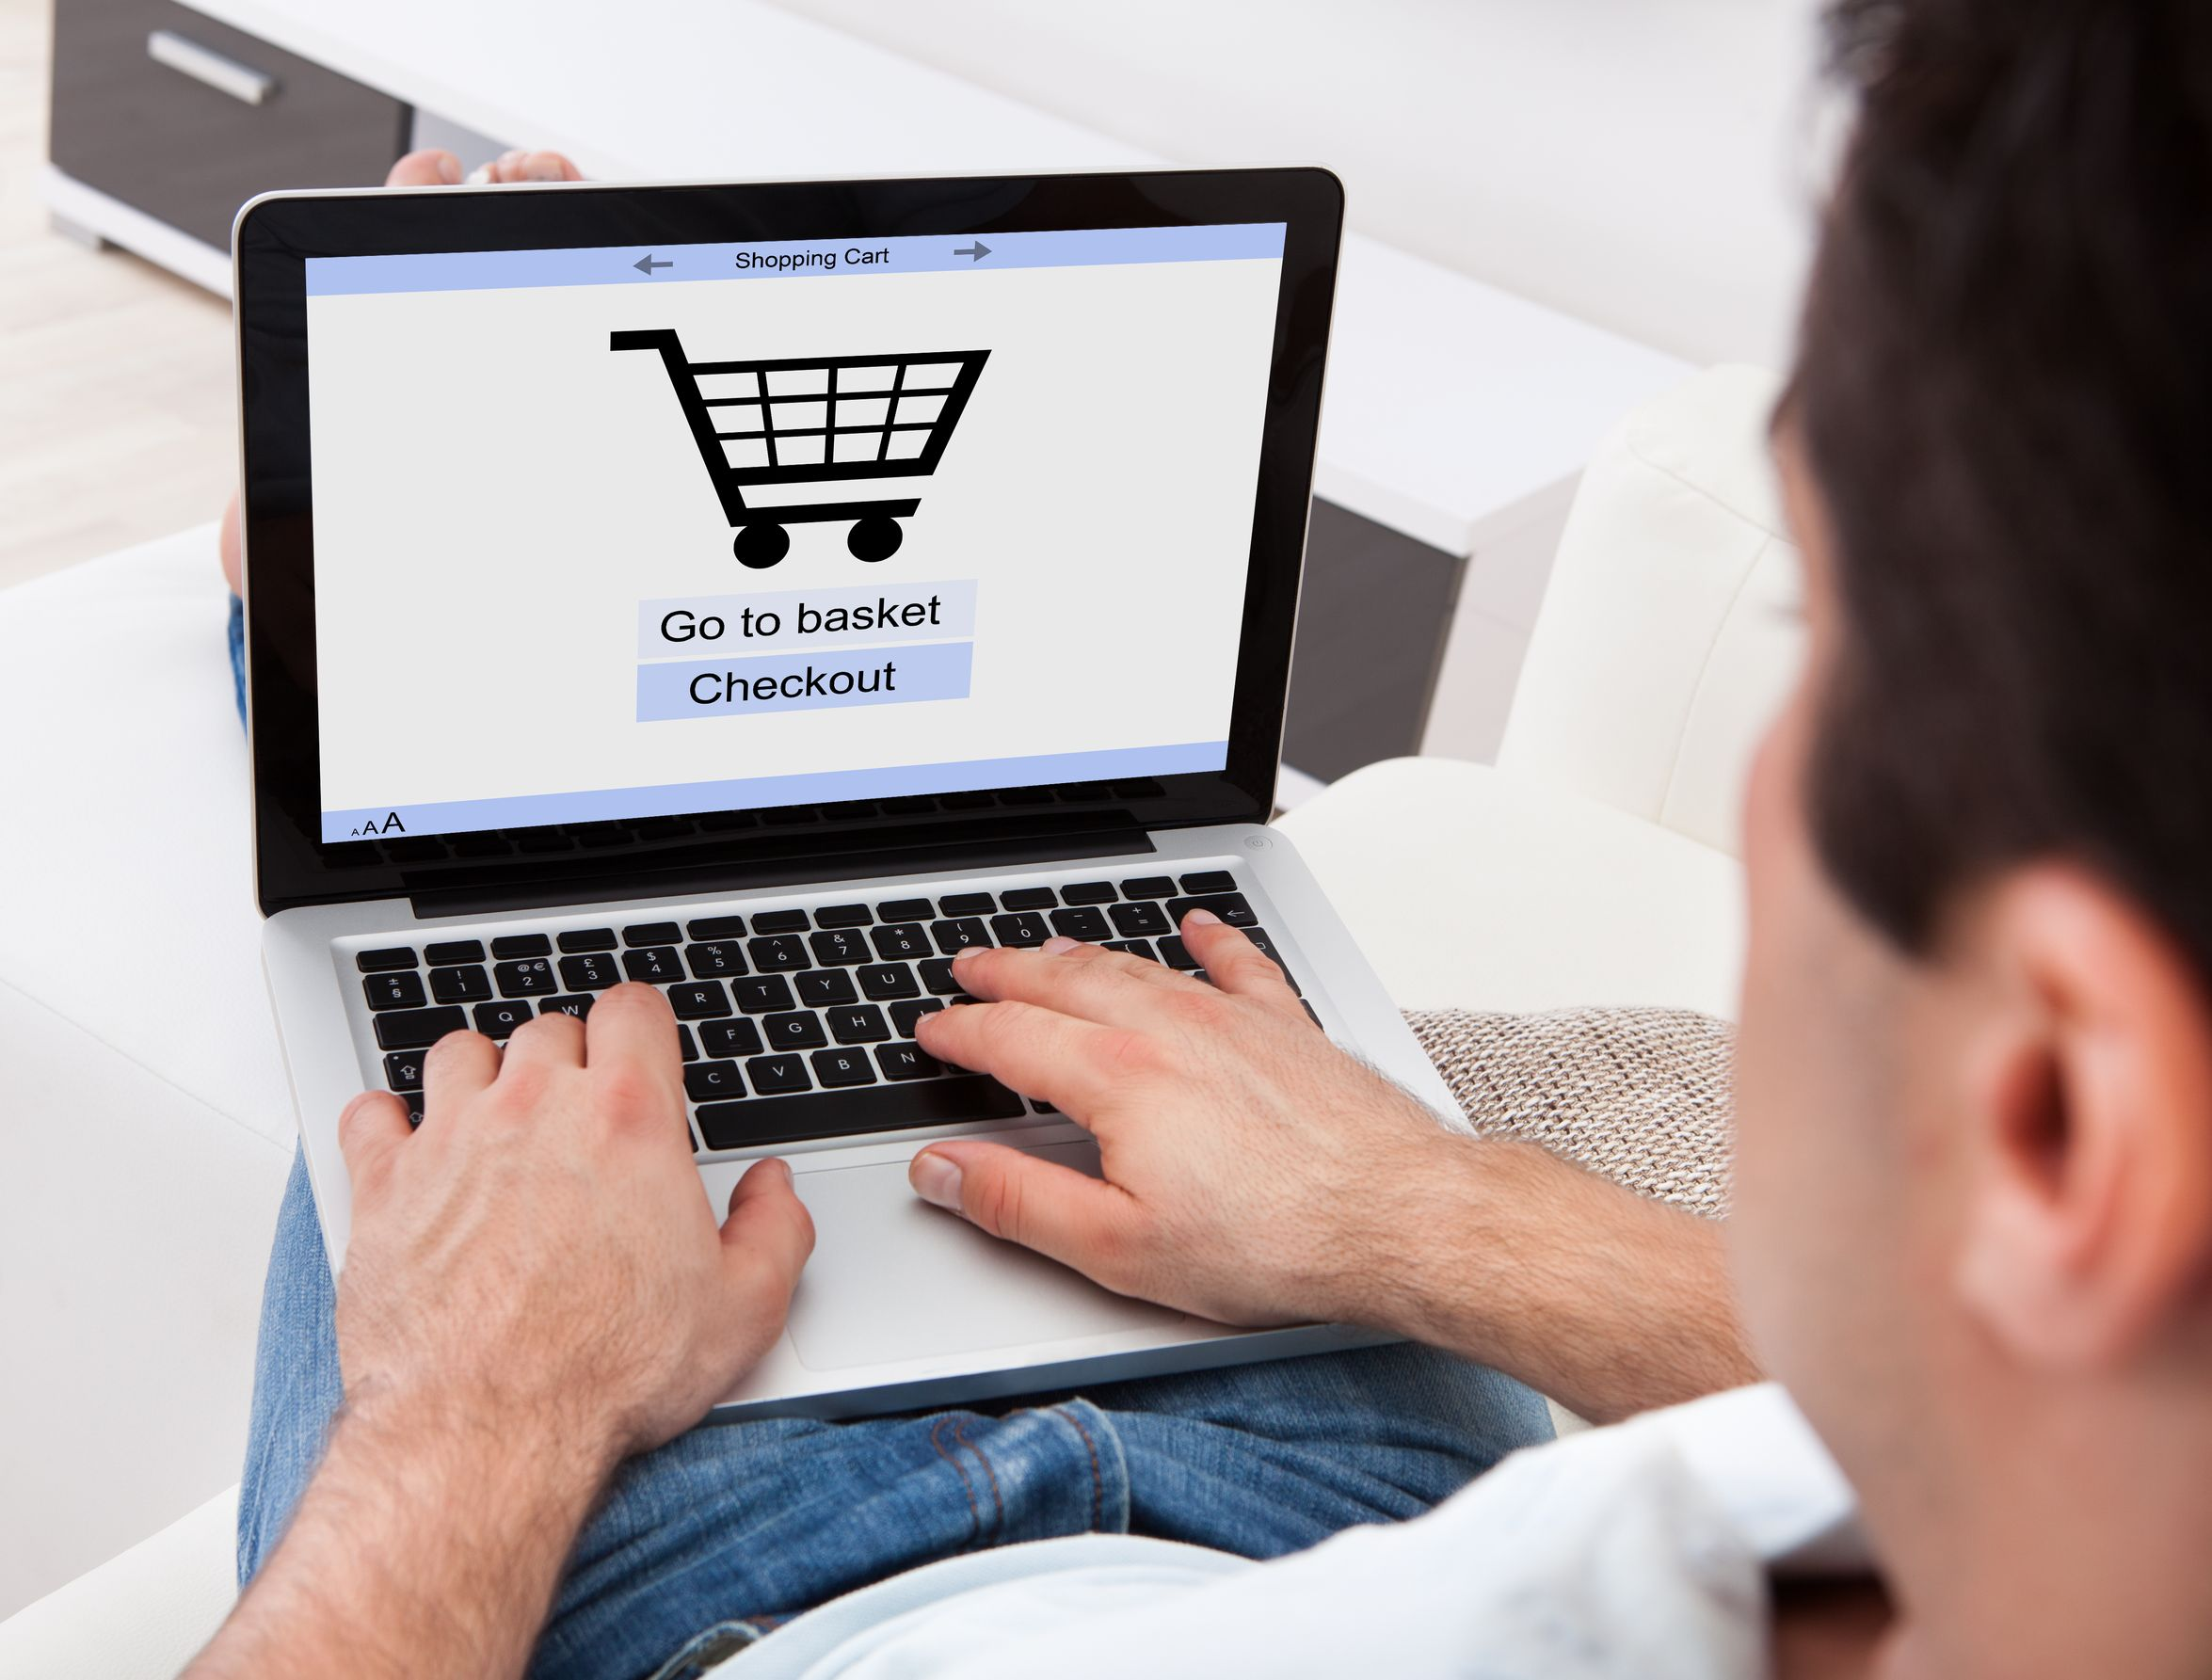 Ecommerce industry in Australia is growing rapidly